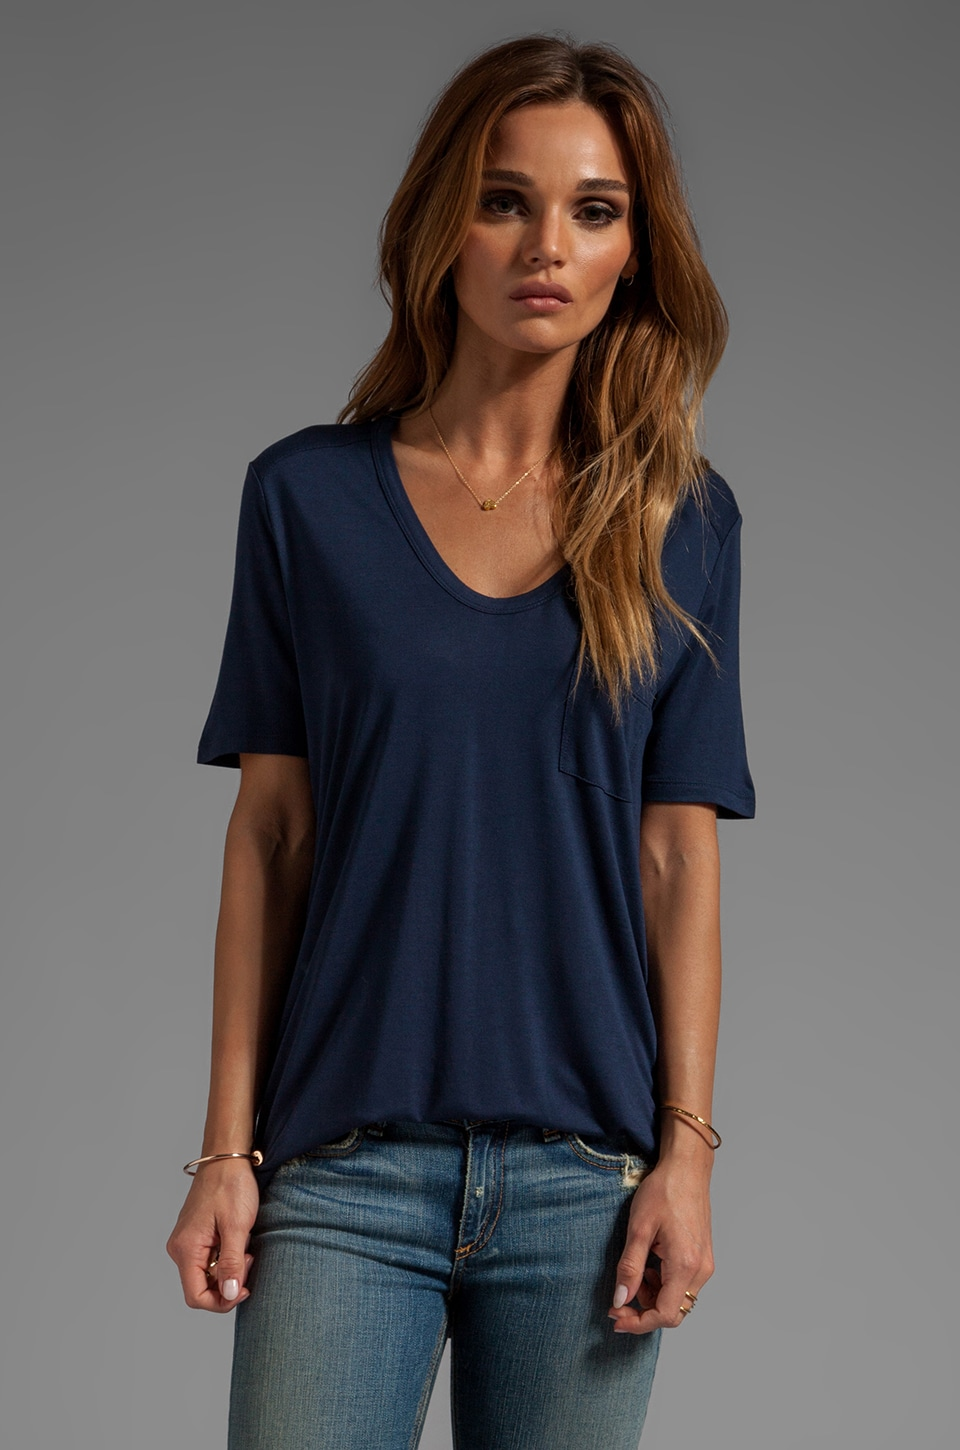 T by Alexander Wang Classic Tee With Pocket in Indigo